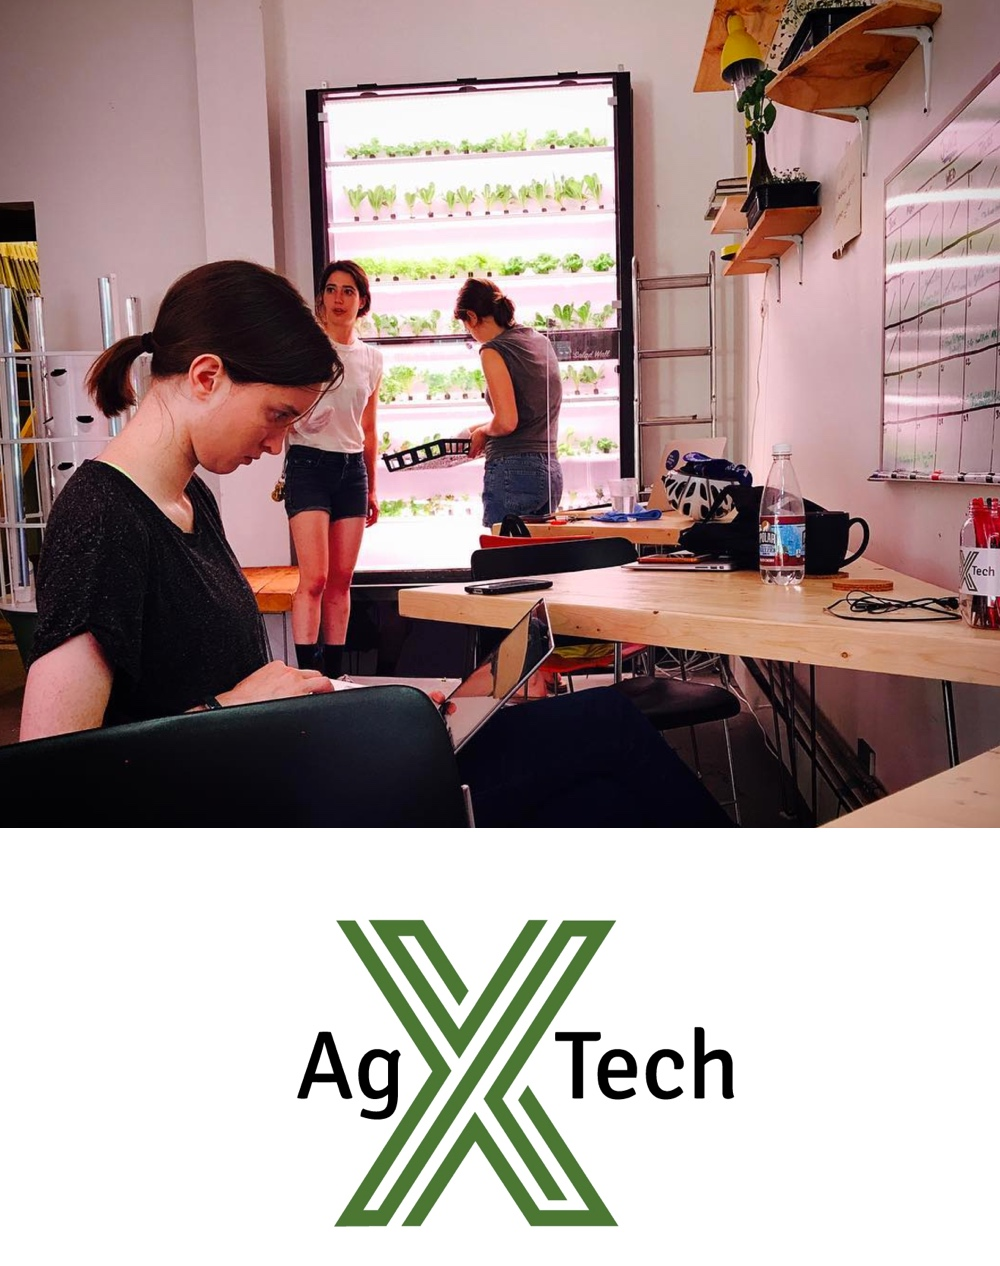 The AgTech X Co-Lab is a dedicated space for those looking to develop business concepts, pilot new projects, or launch their careers in AgTech & Urban Agriculture. -